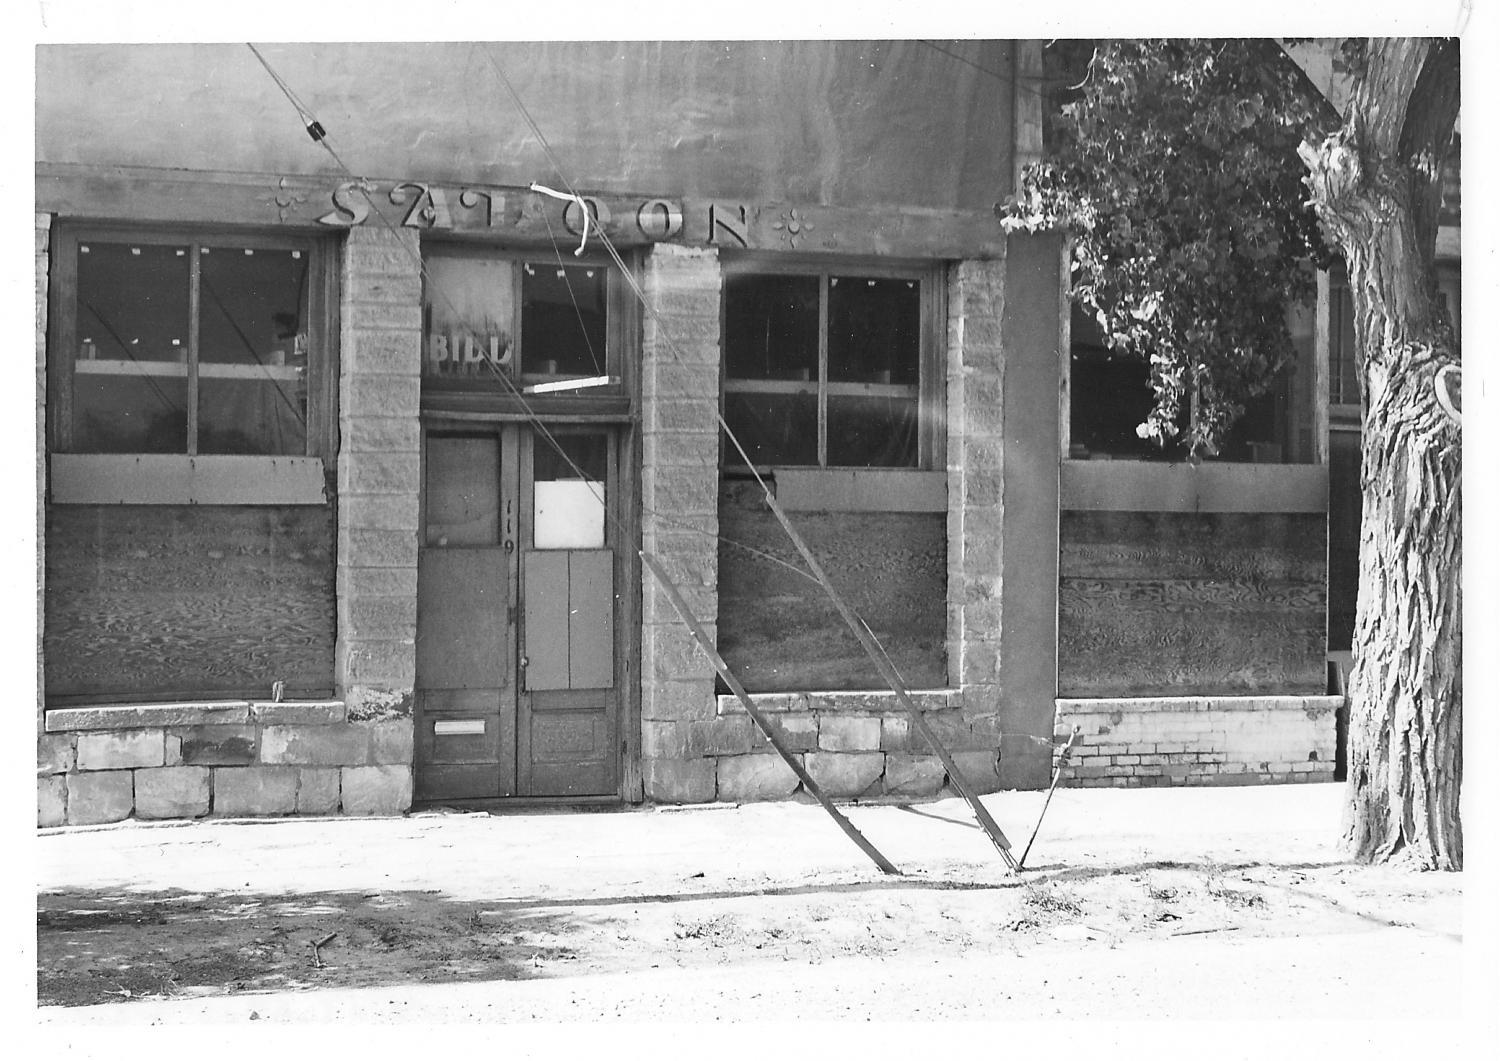 An older photo of the Bucket of Blood saloon. Date unknown.